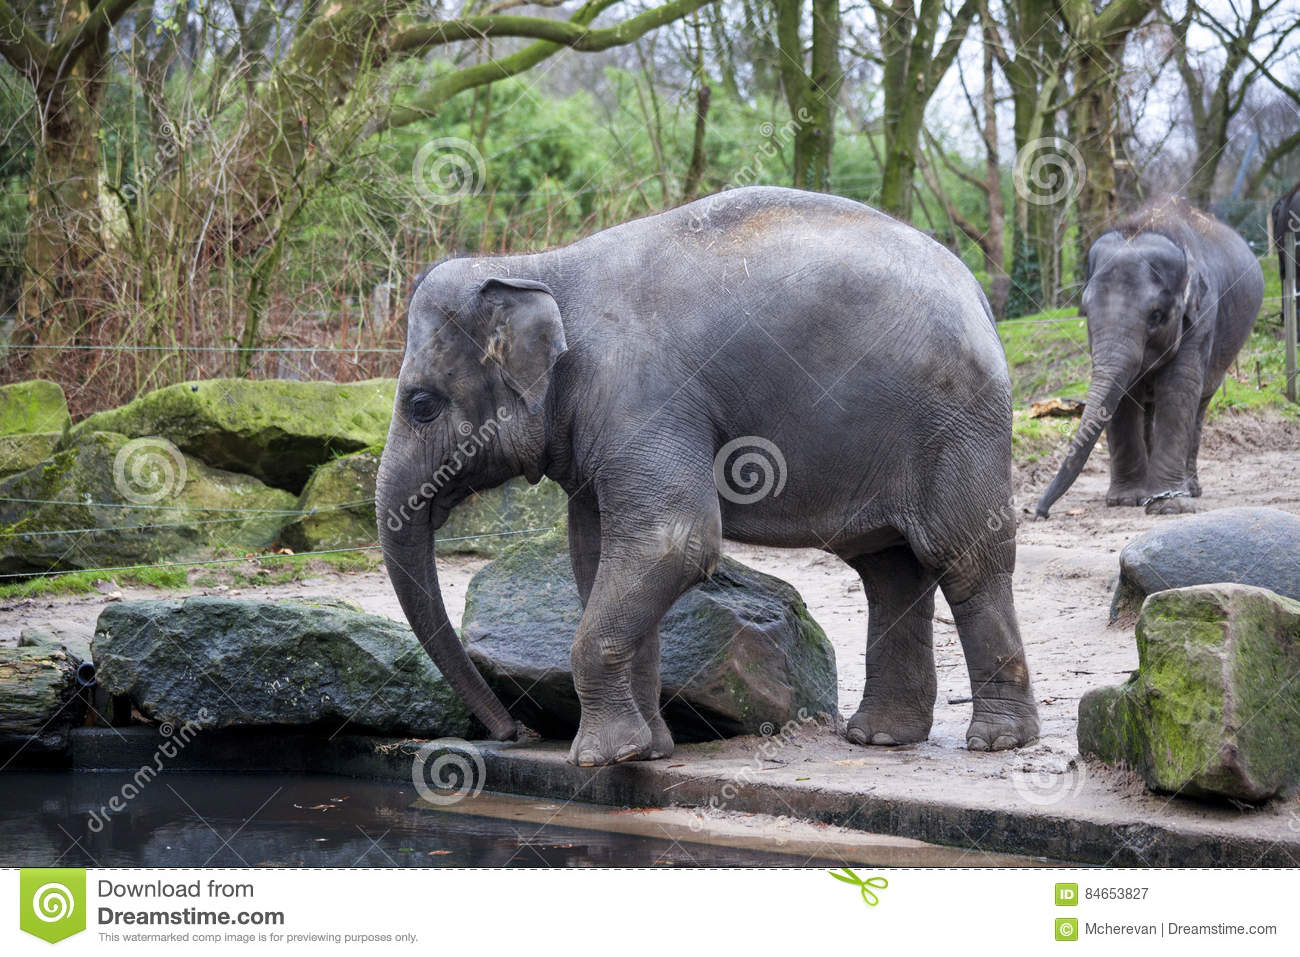 A Trained Elephant Goes After A Hard Day In The Jungle